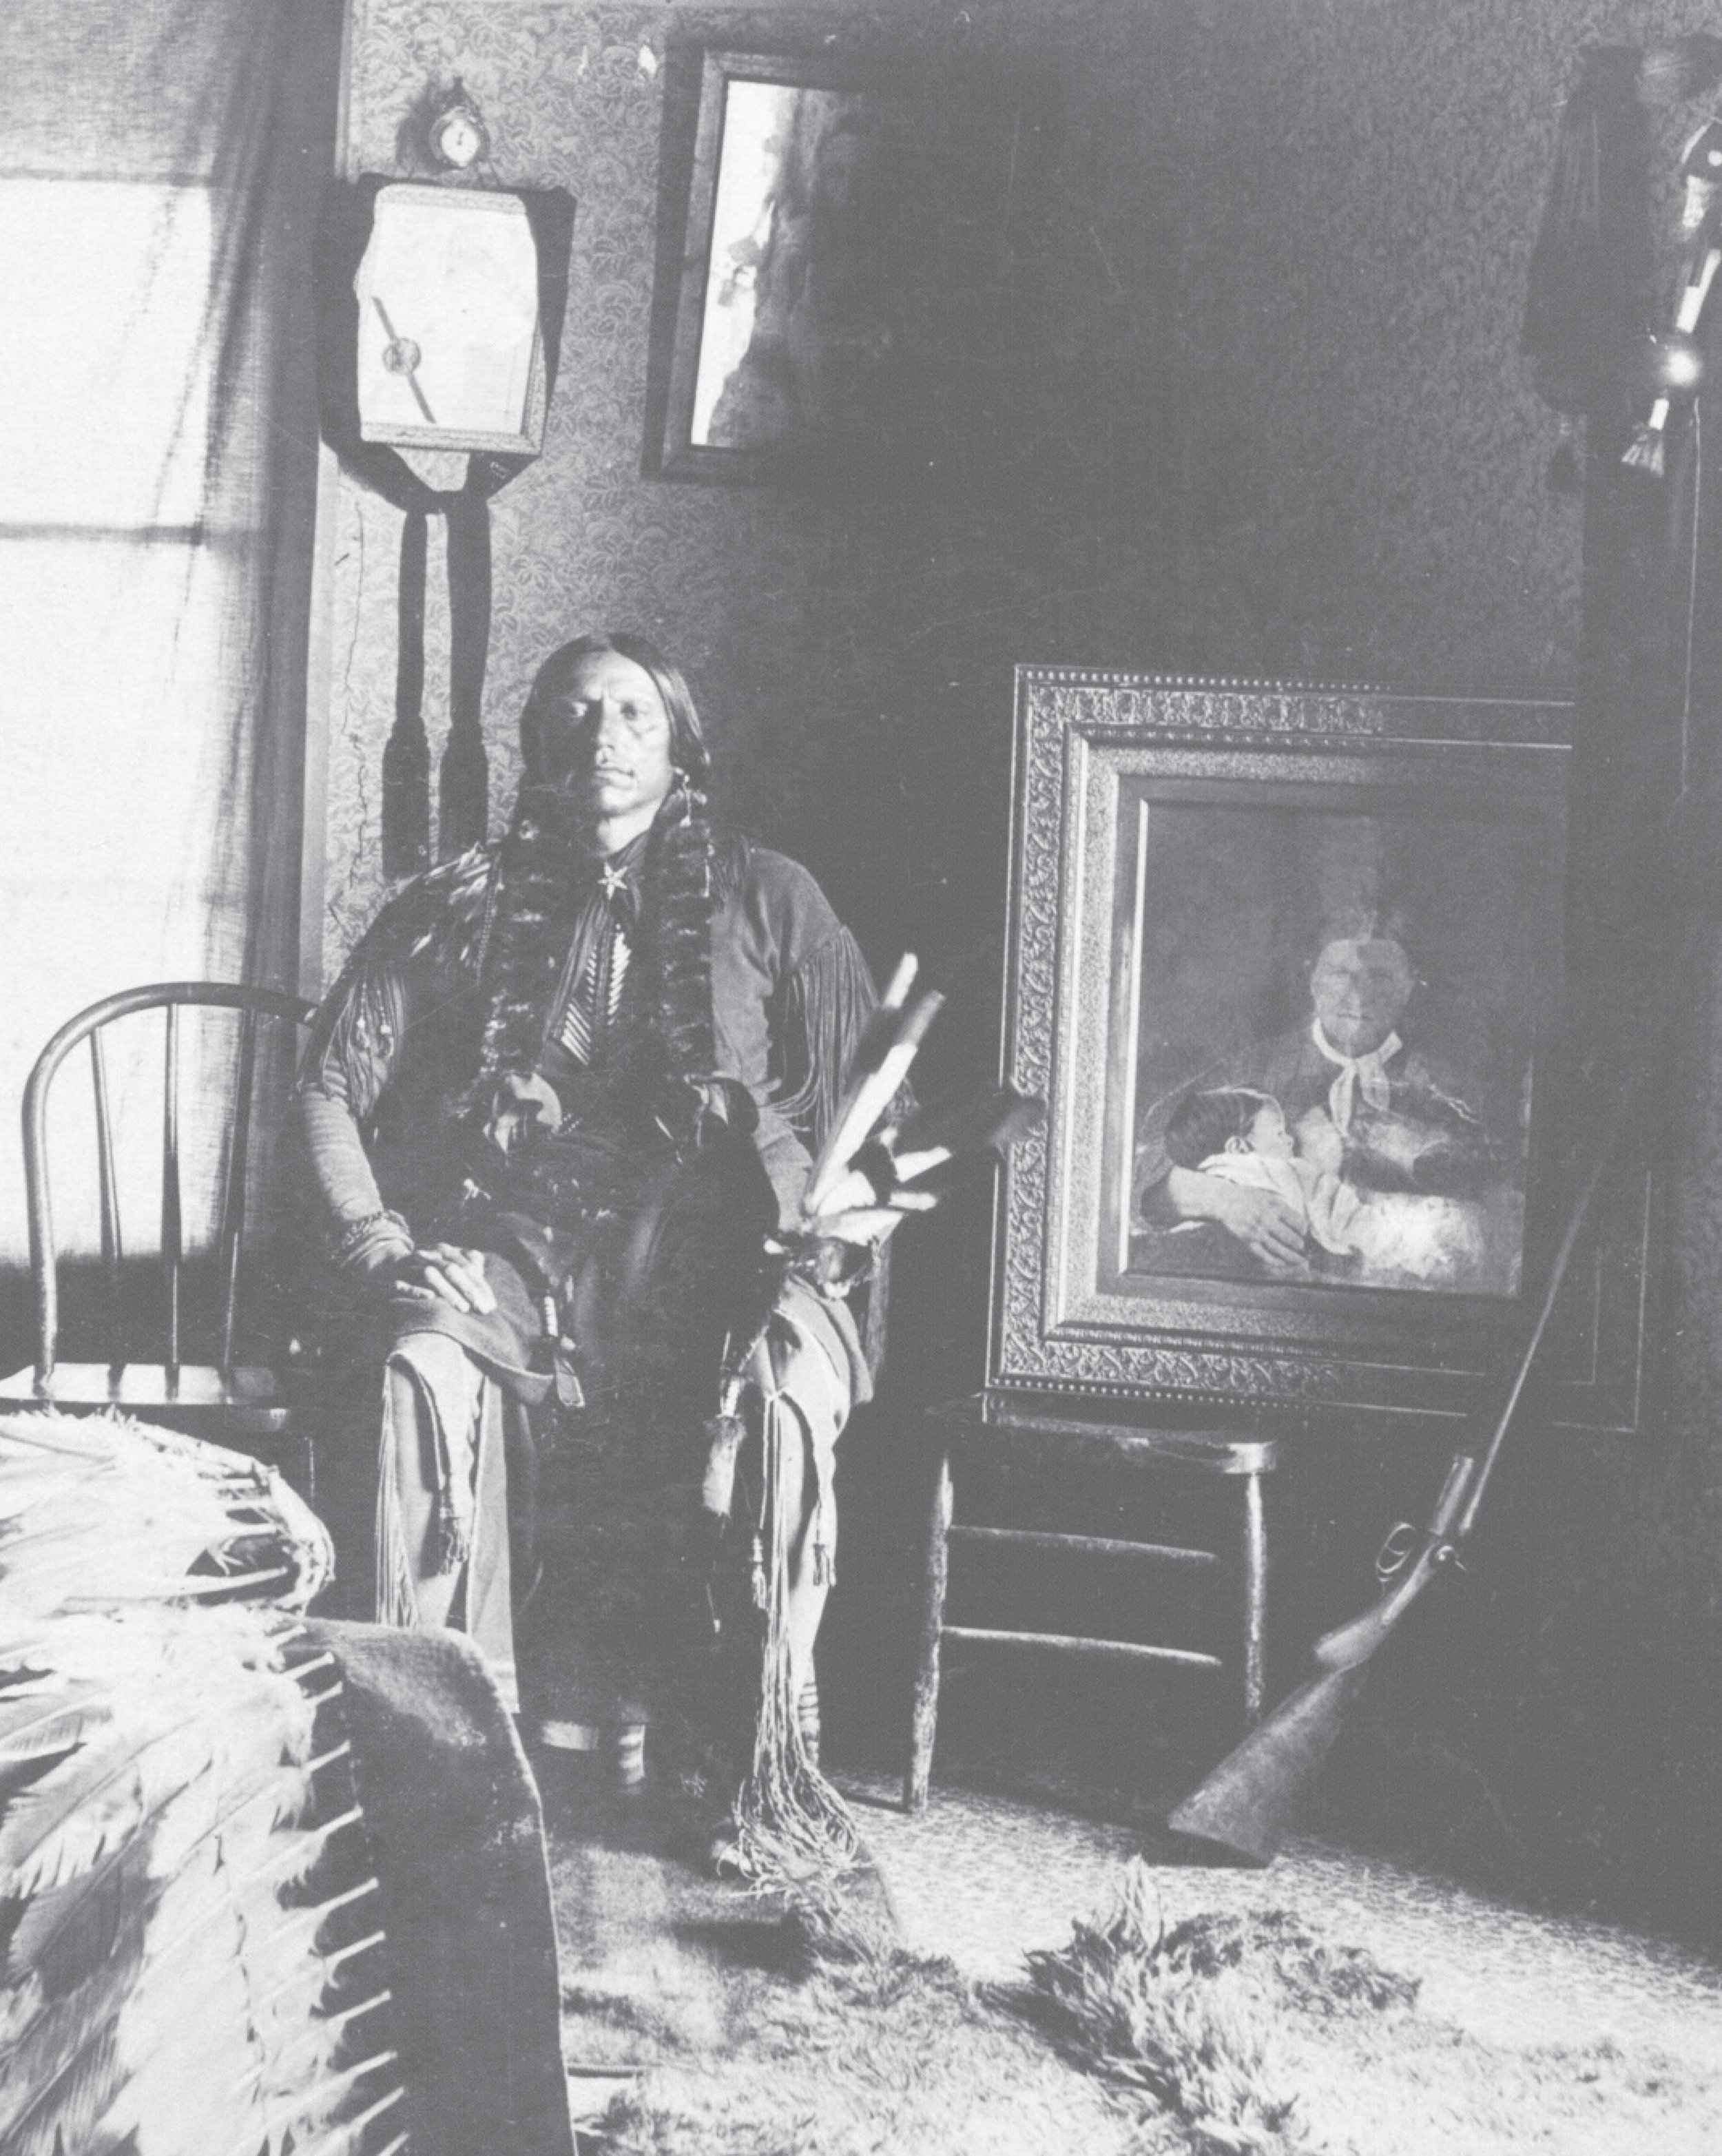 Quanah in his bedroom at Star House, ca. 1897. Next to him is a framed portrait of his mother, Cynthia Ann, and sister, Prairie Flower—his most cherished possession.